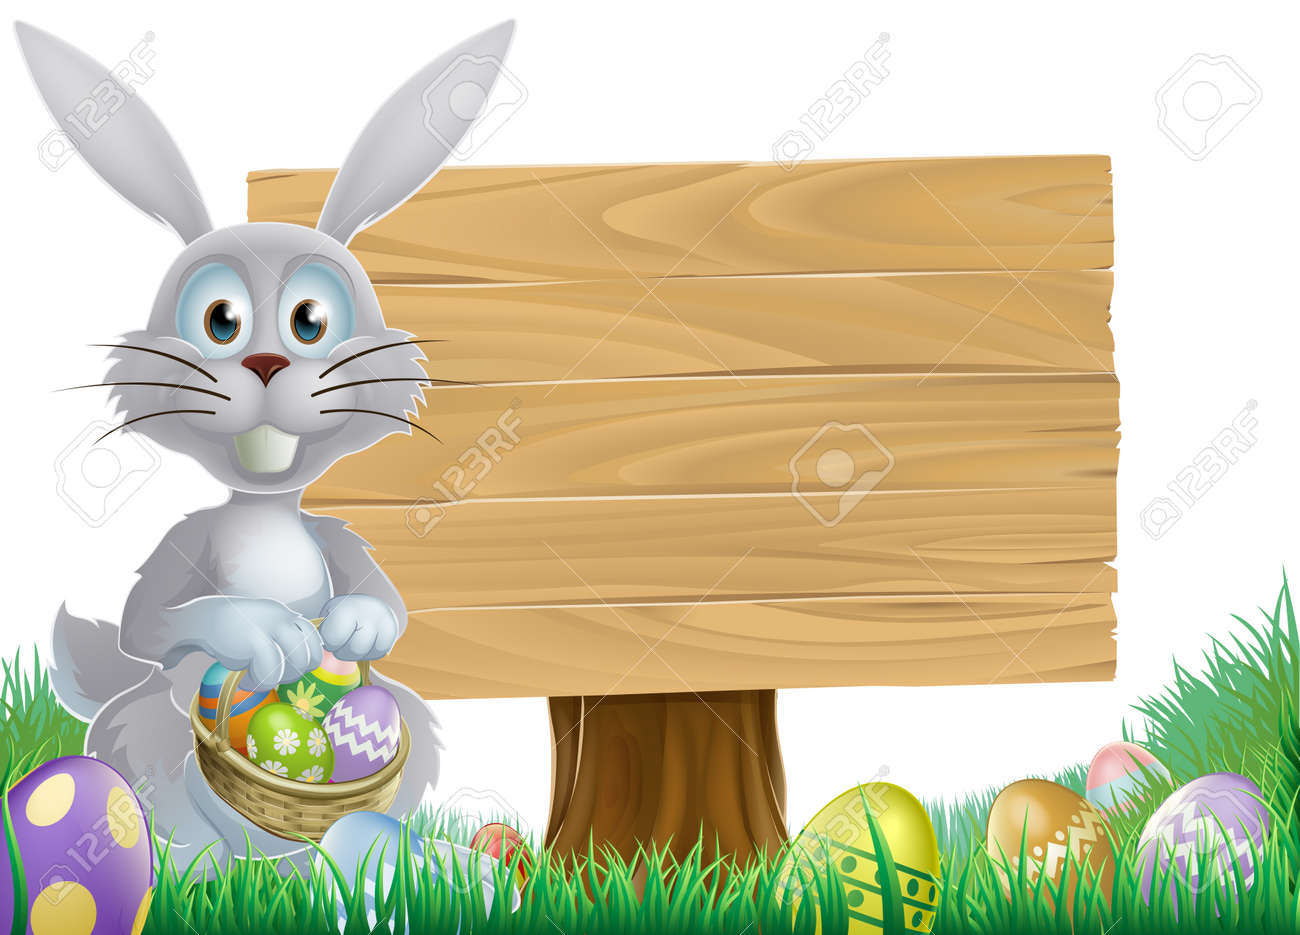 Easter bunny rabbit with a wooden sign holding chocolate Easter eggs basket Stock Vector - 24900285